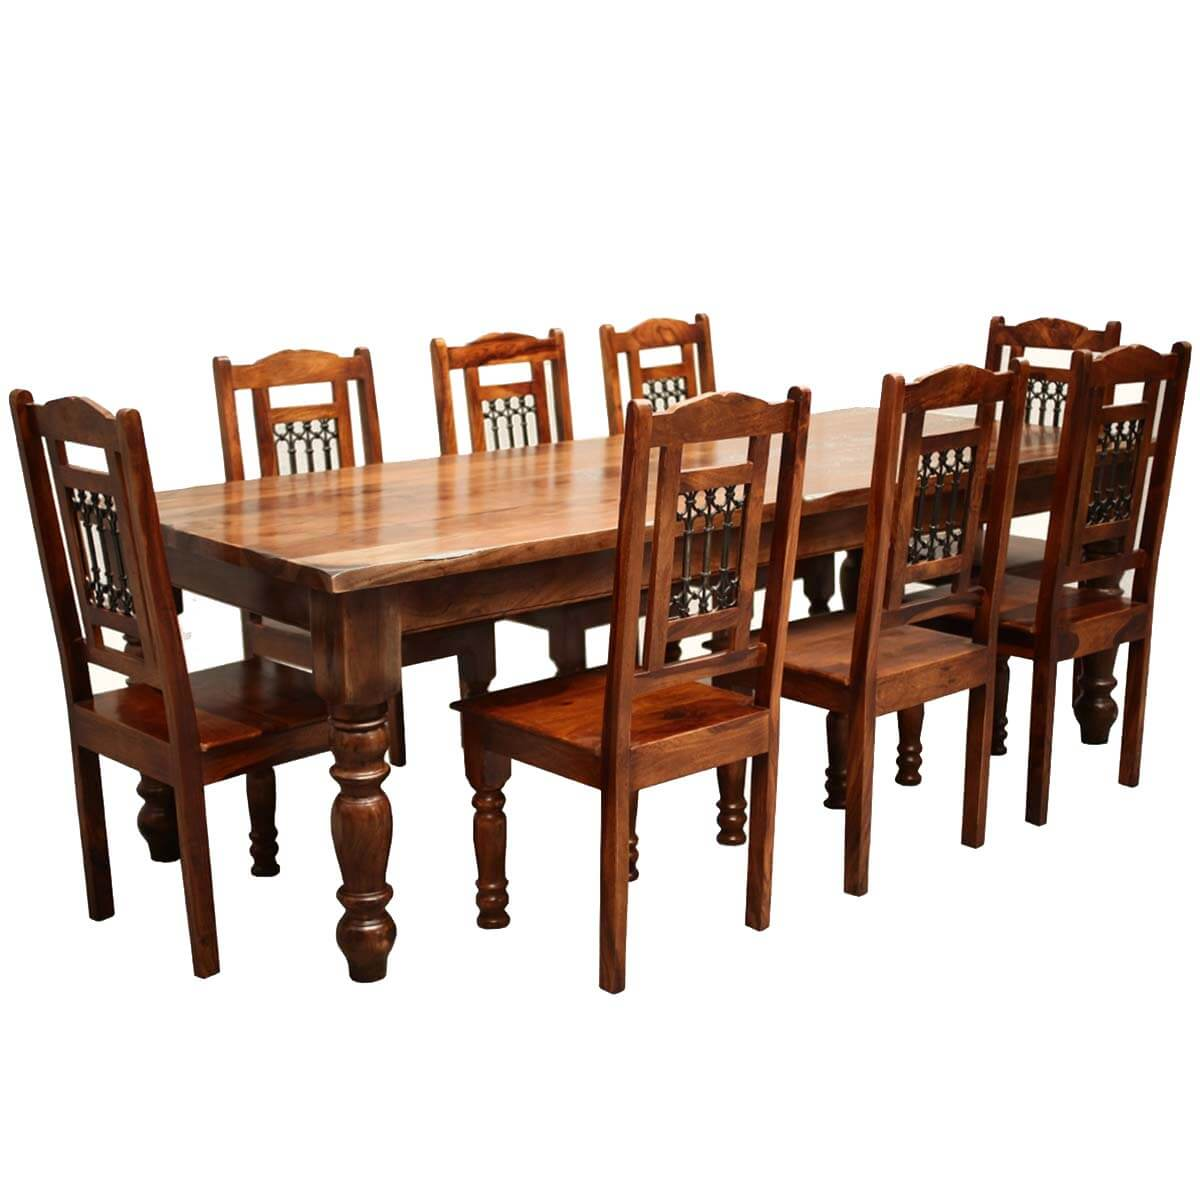 Rustic furniture solid wood large dining table 8 chair set for Dining table and chairs